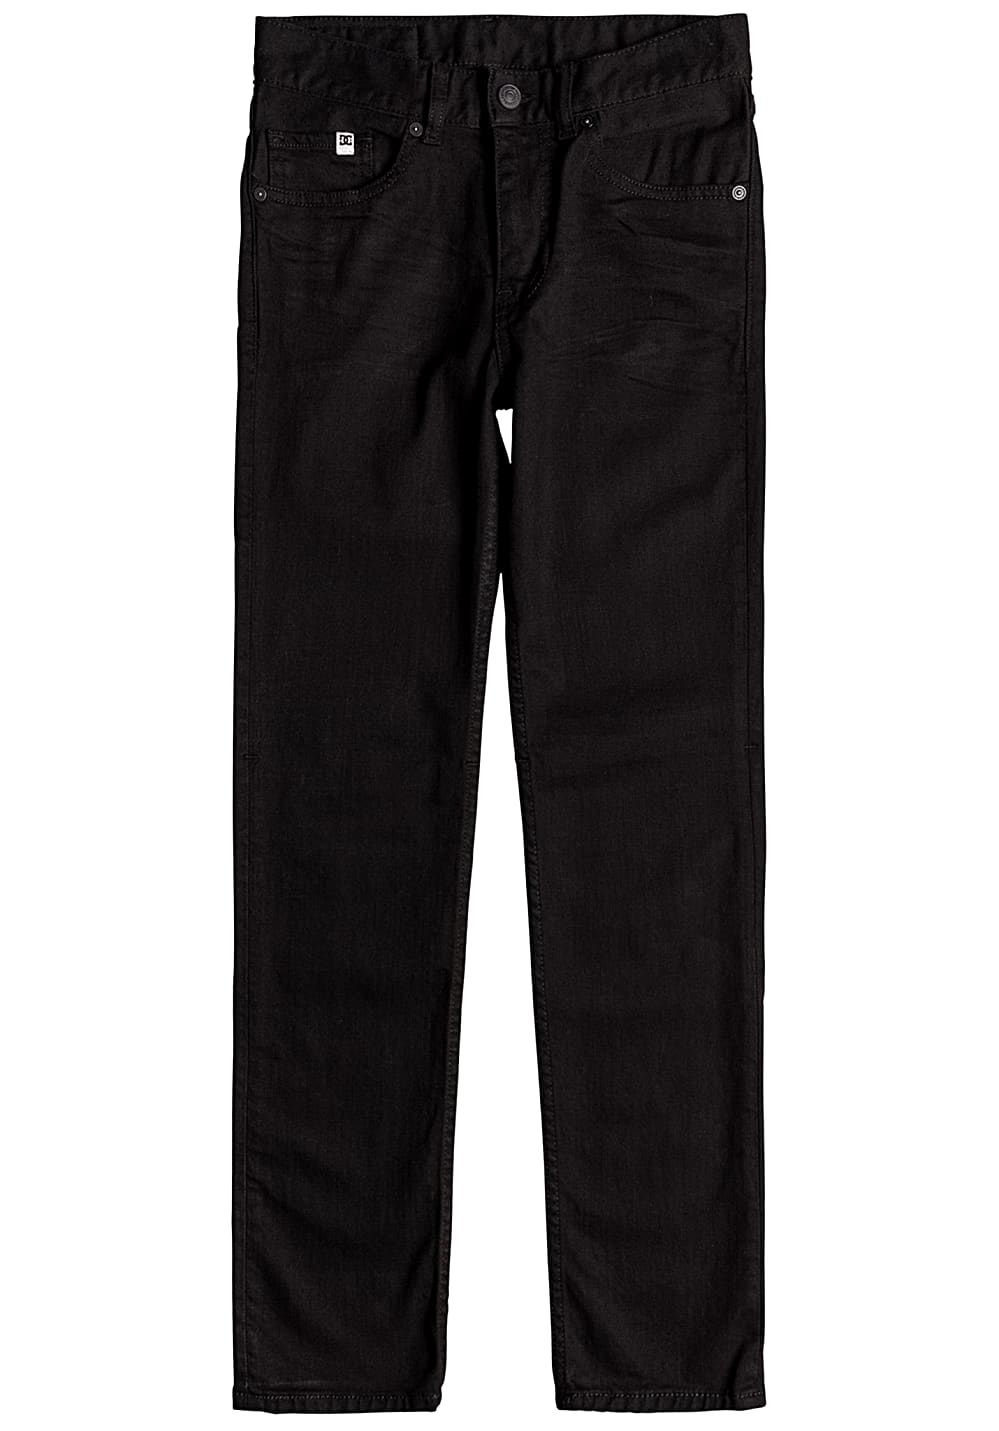 Boyshosen - DC Worker Slim Jeans für Jungs Schwarz - Onlineshop Planet Sports